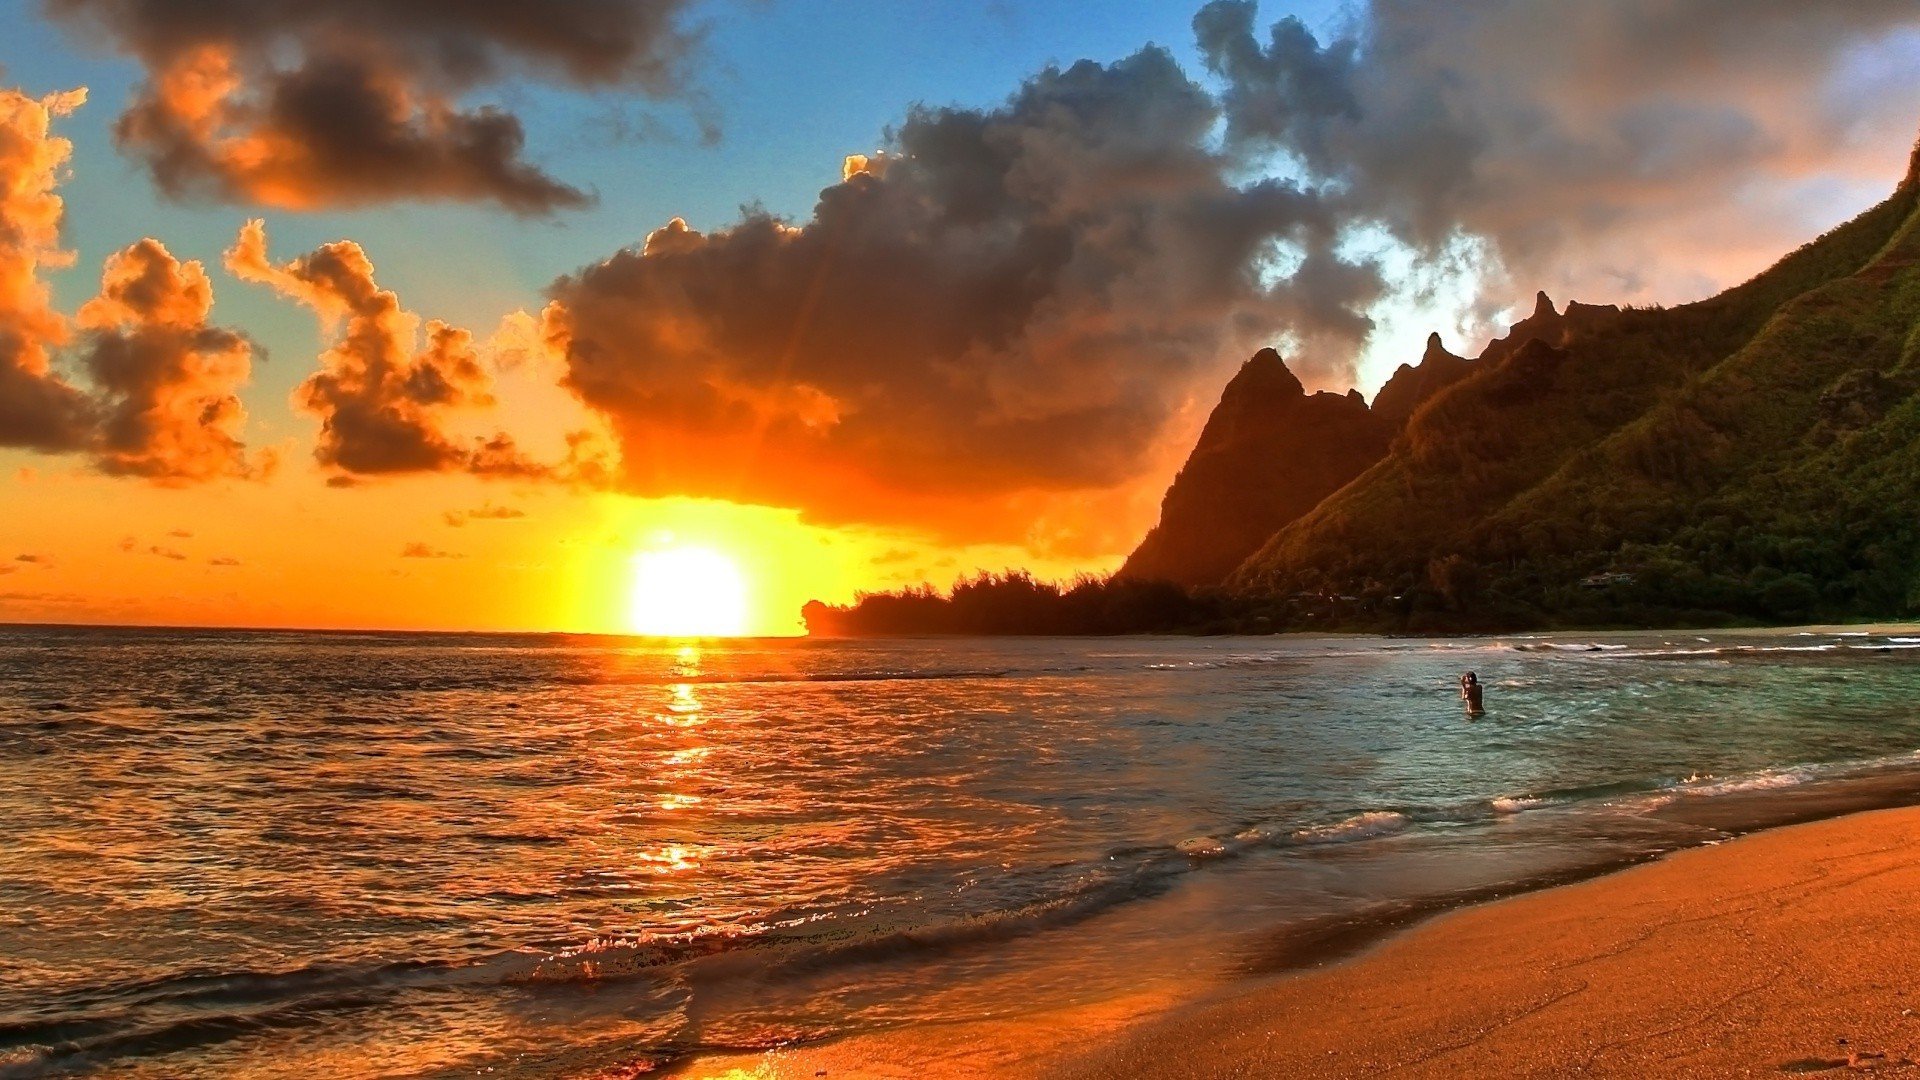 10 New Hawaii Beach Pictures Wallpapers Full Hd 1920 1080: Hawaii Sunset Wallpaper ·① WallpaperTag